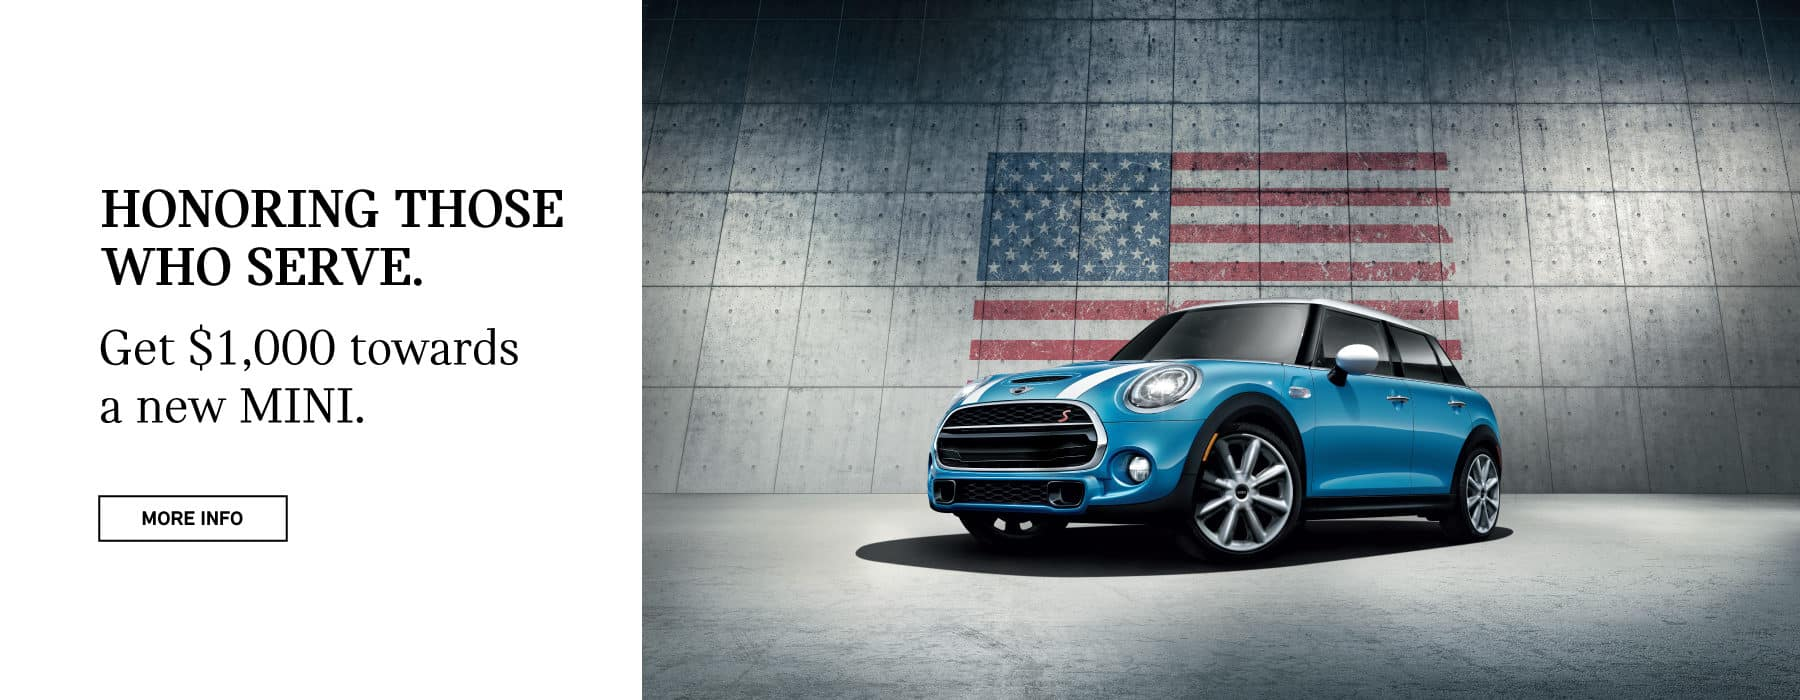 HONORING THOSE WHO SERVE. Get $1,000 towards a new MINI. CLICK FOR MORE INFO